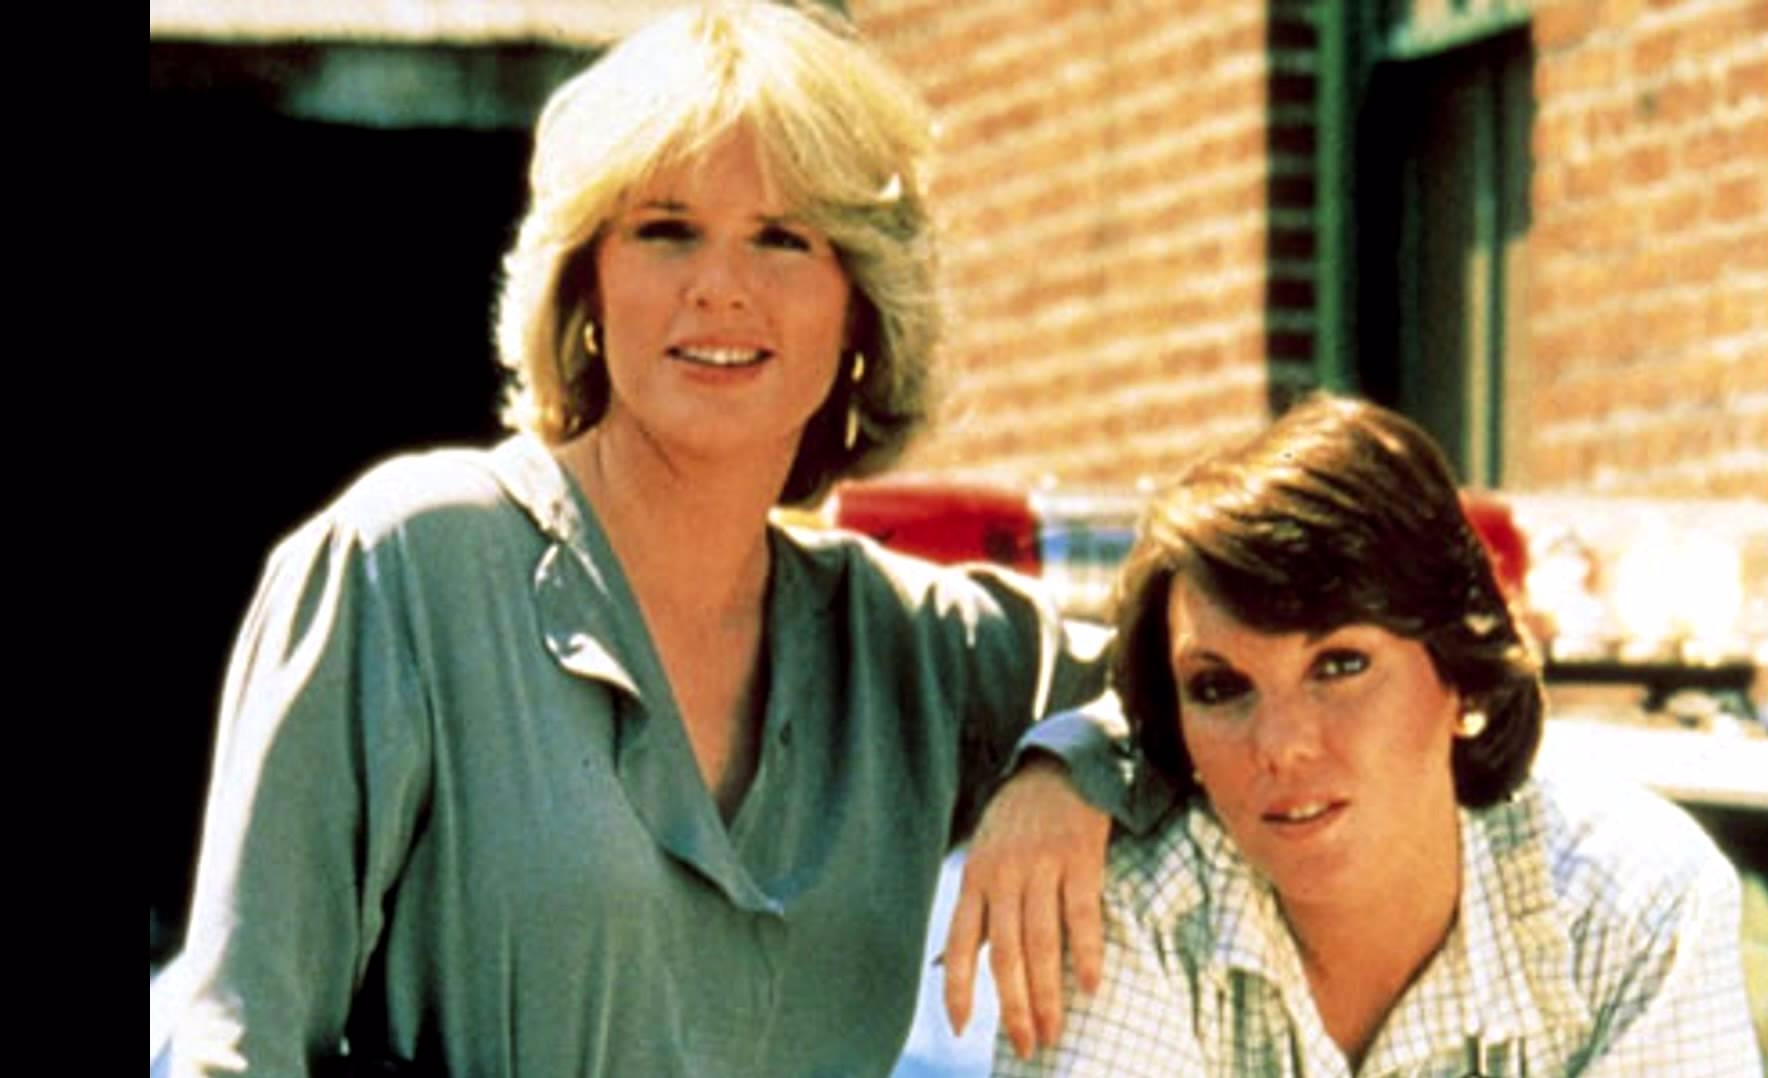 Sharon Gless's (left) old picture with co-actress Tyne Daly as Det. Mary Lacey from popular series Cagney and Lacey.